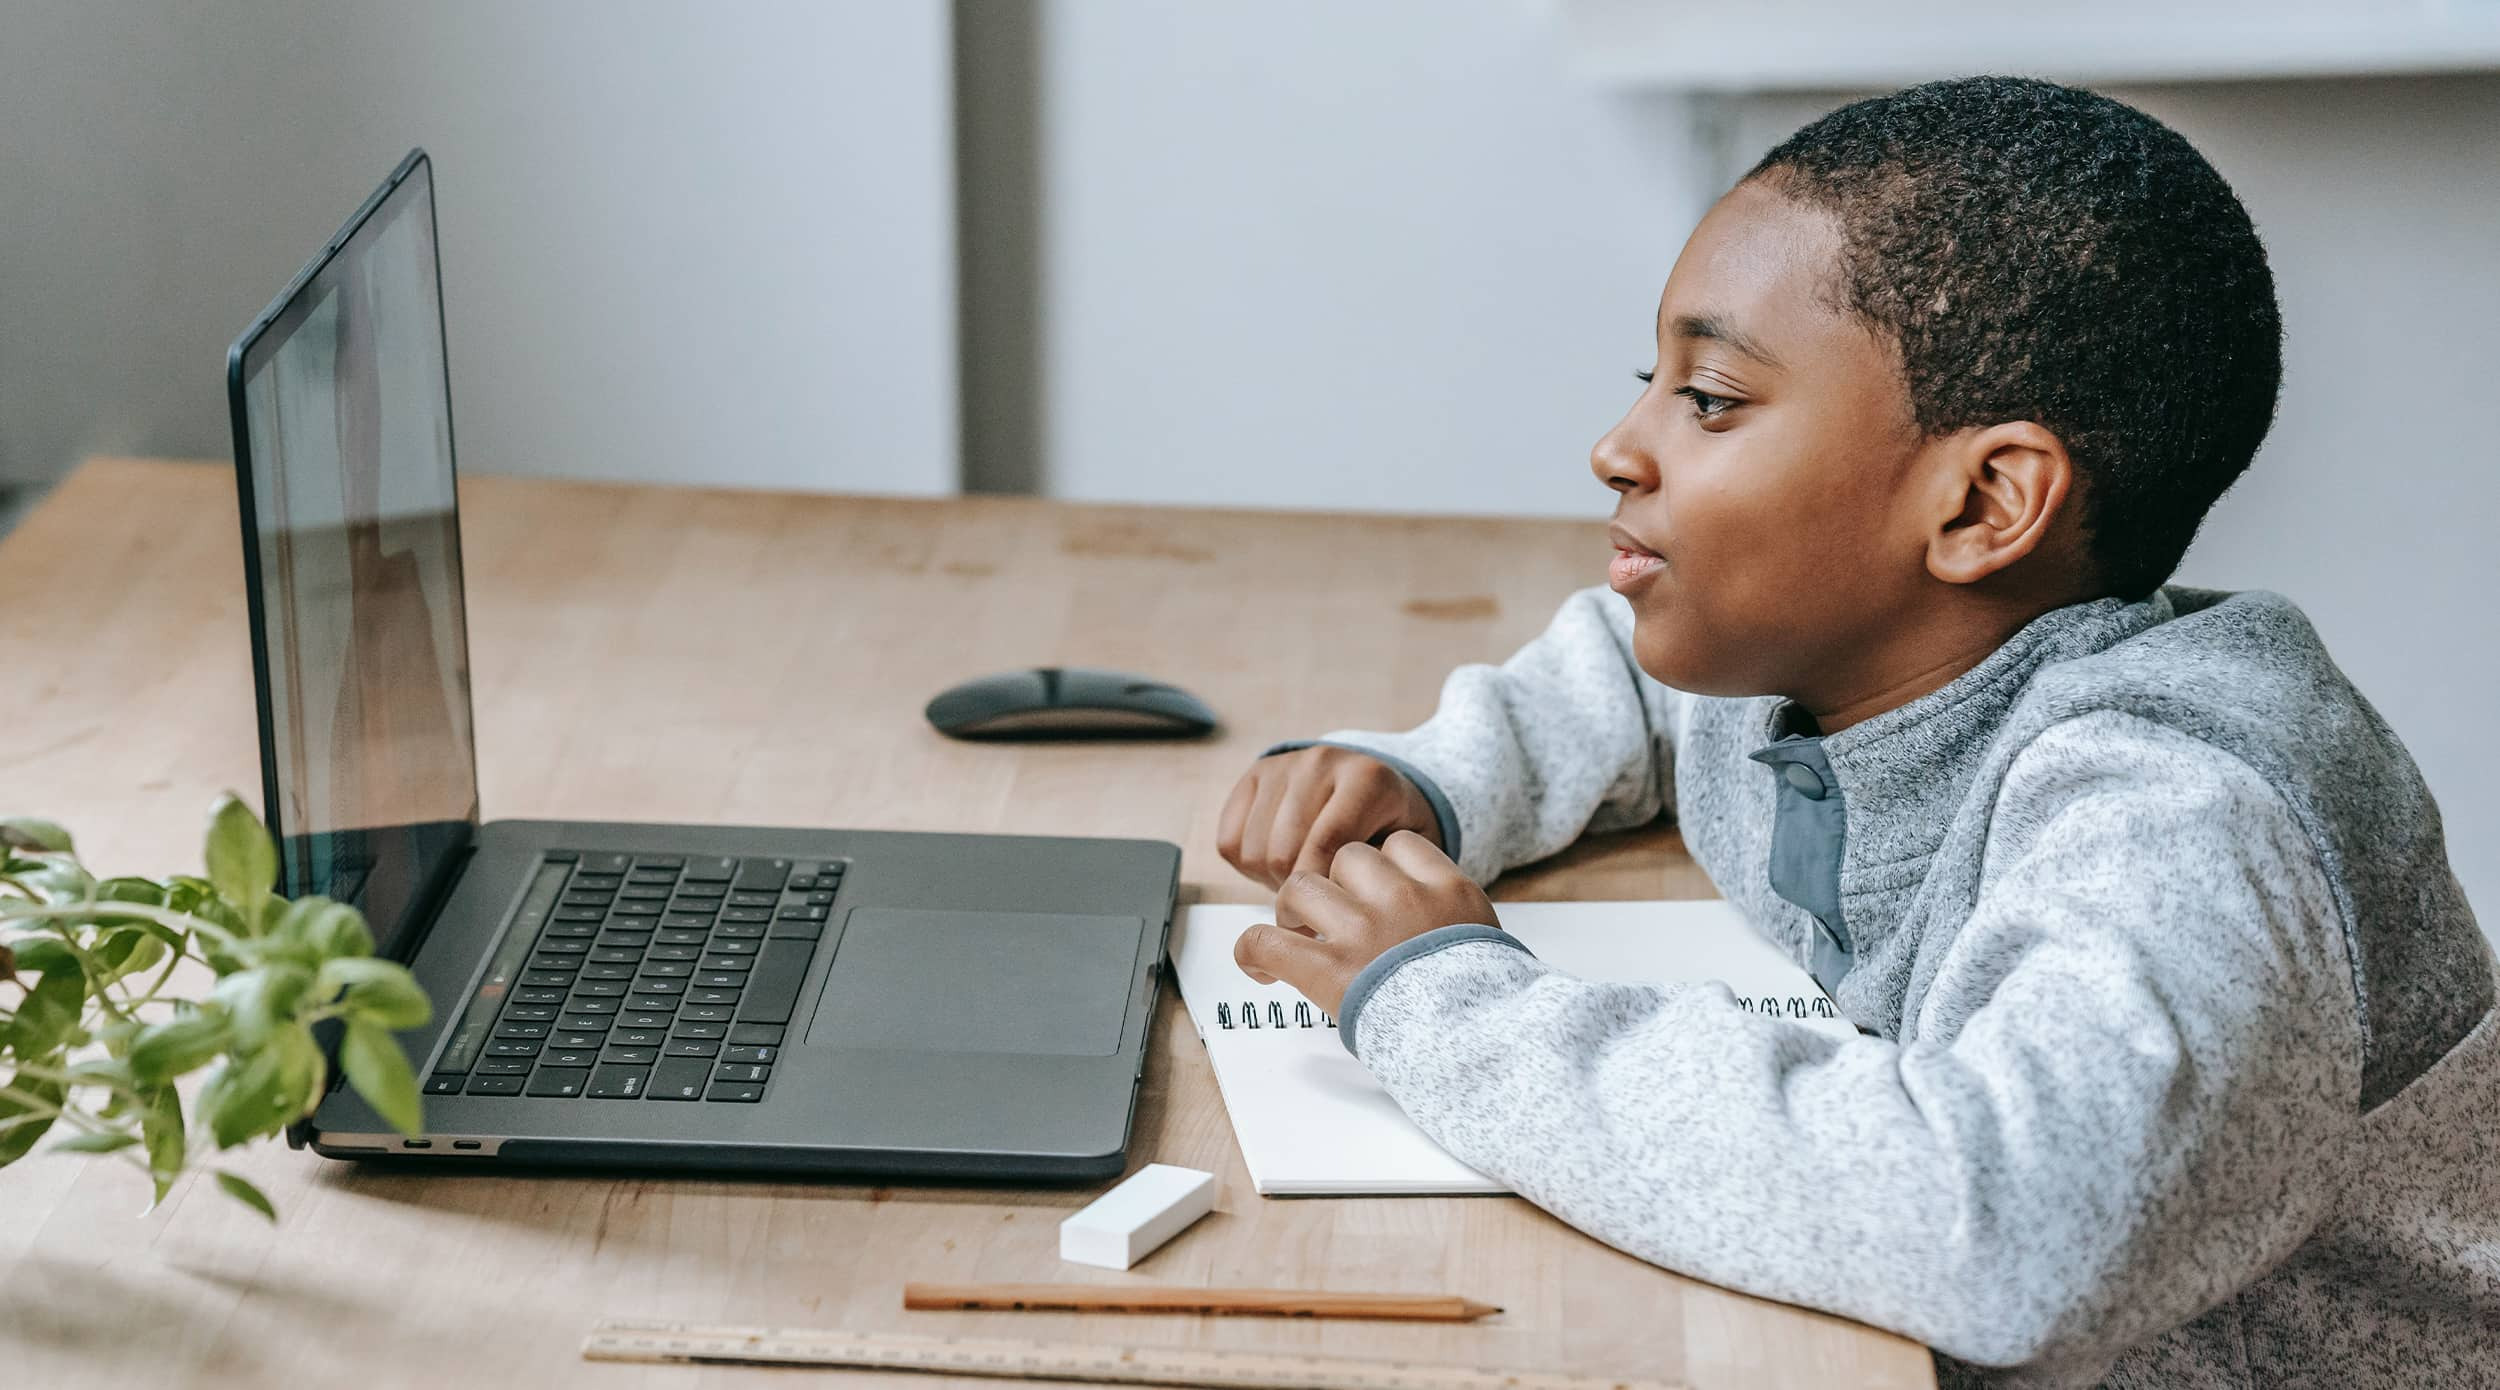 A student watches a Rachel's Challenge kindness rally on a computer